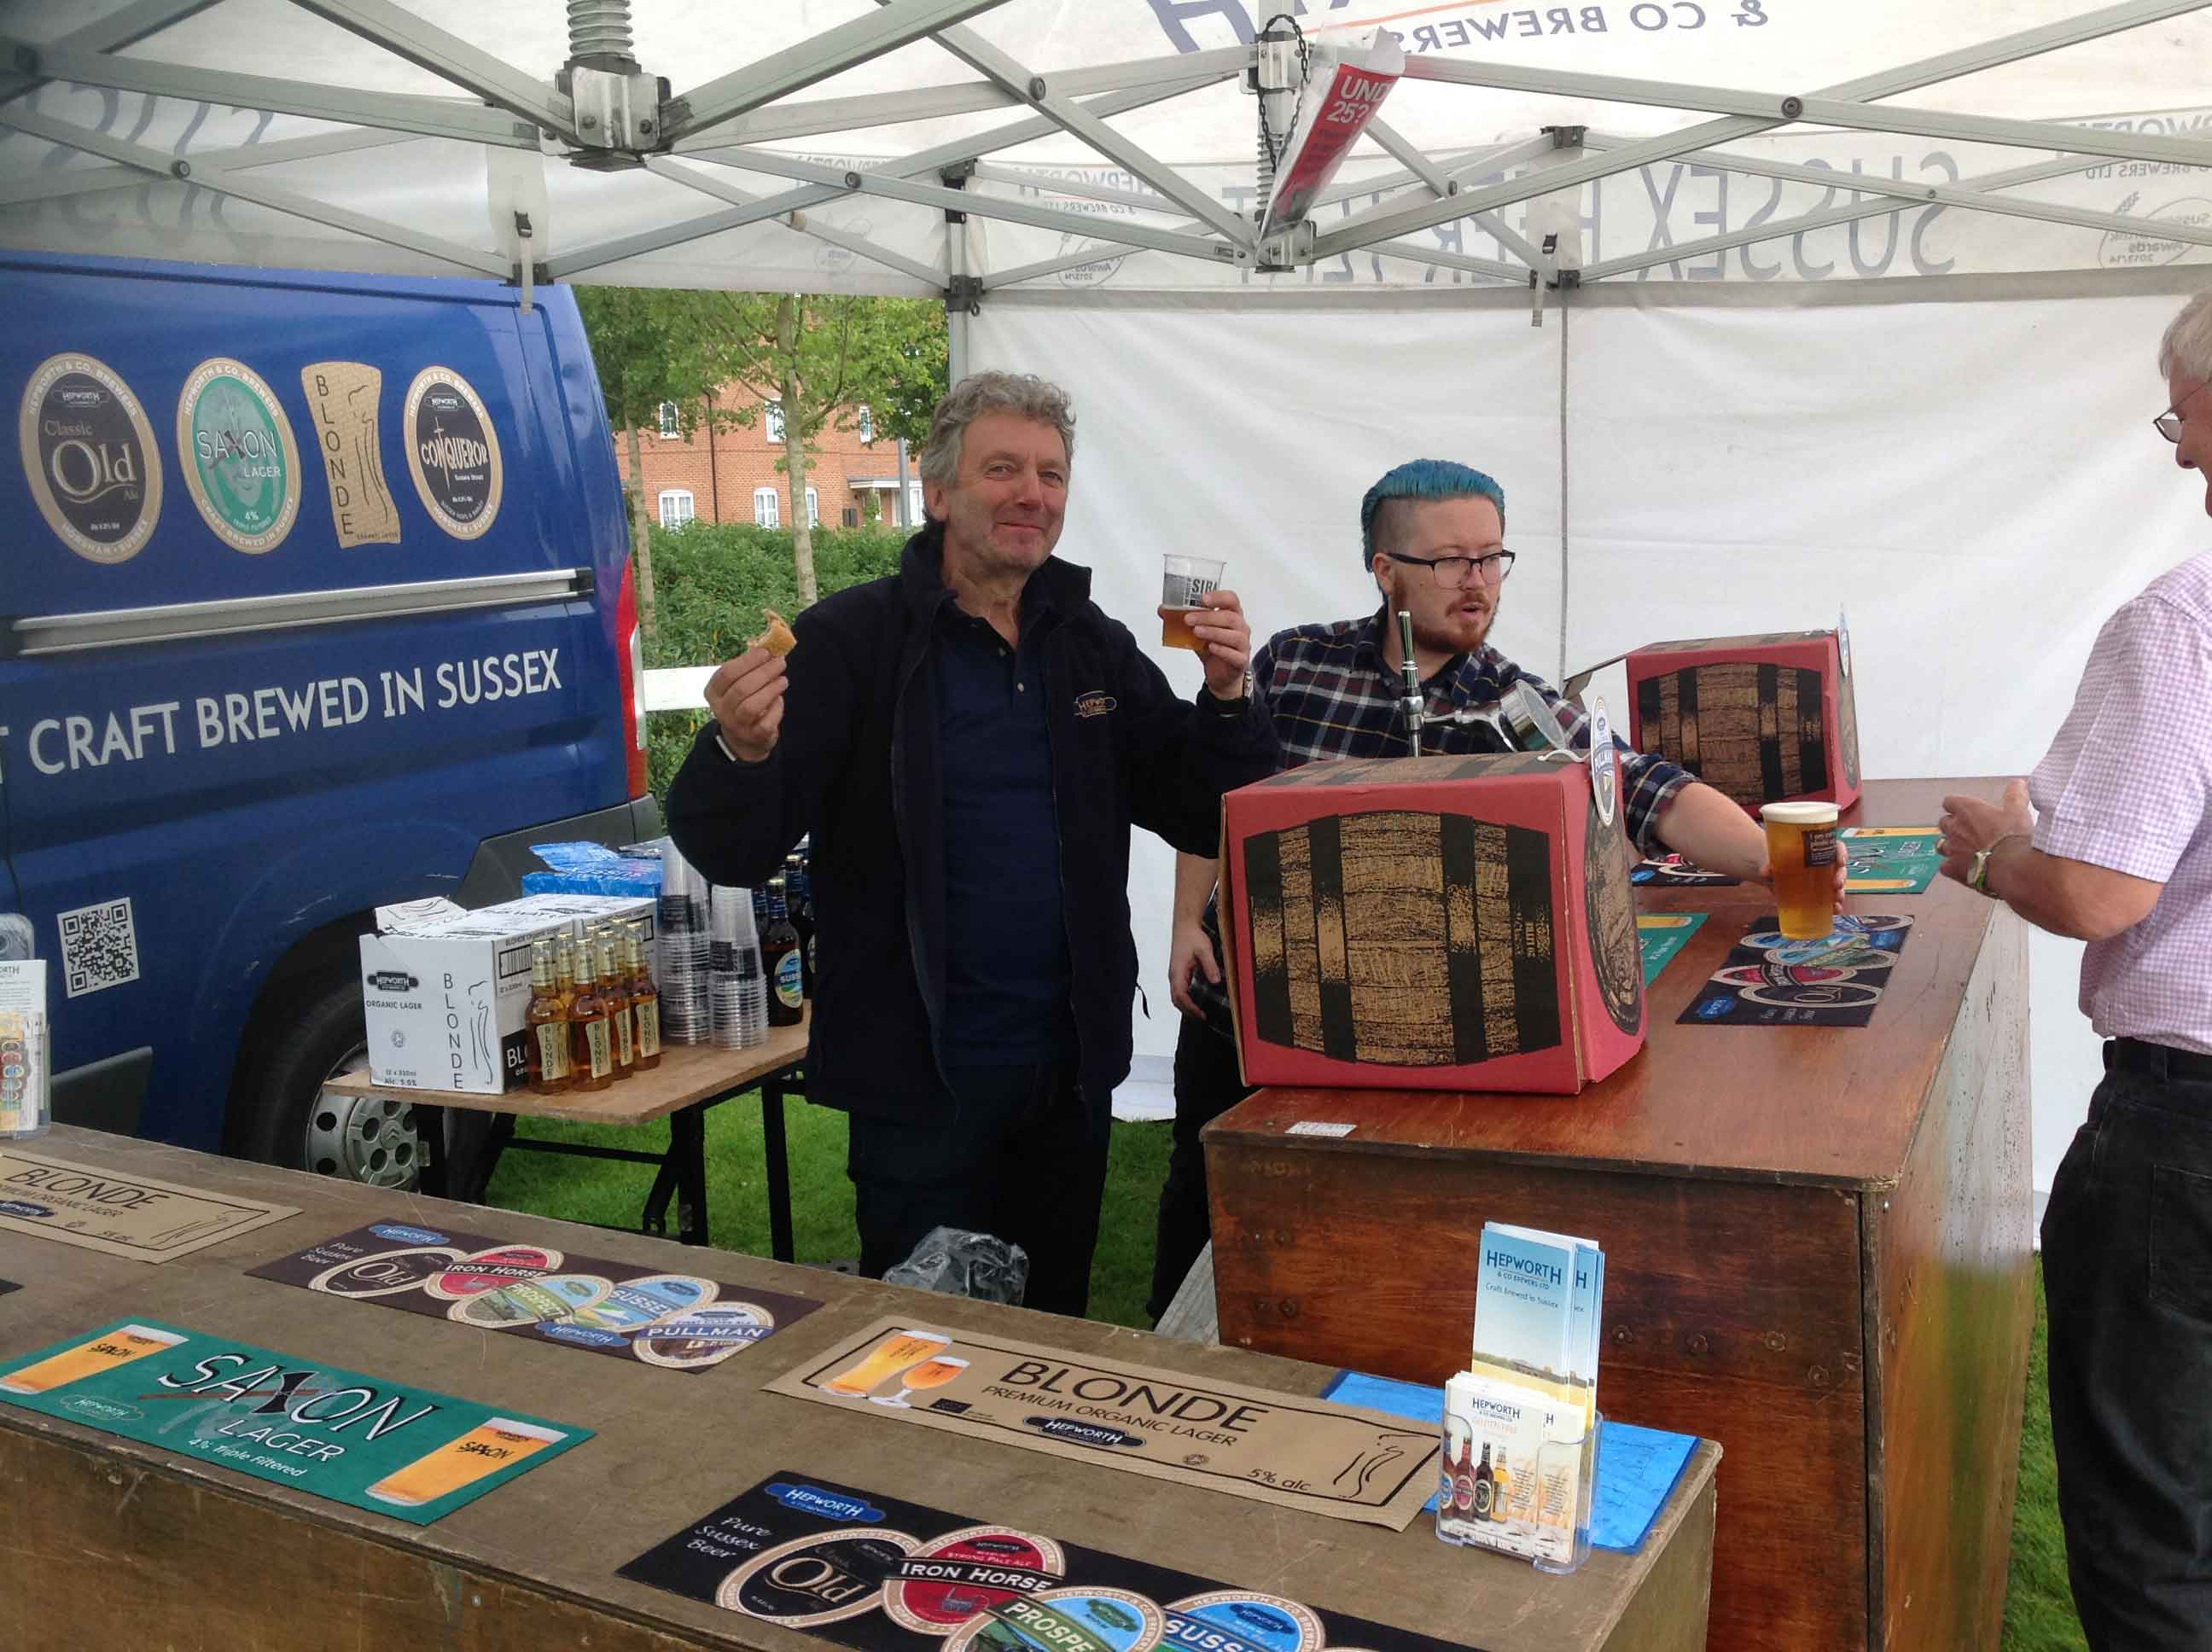 Kilnwood fun day craft beer